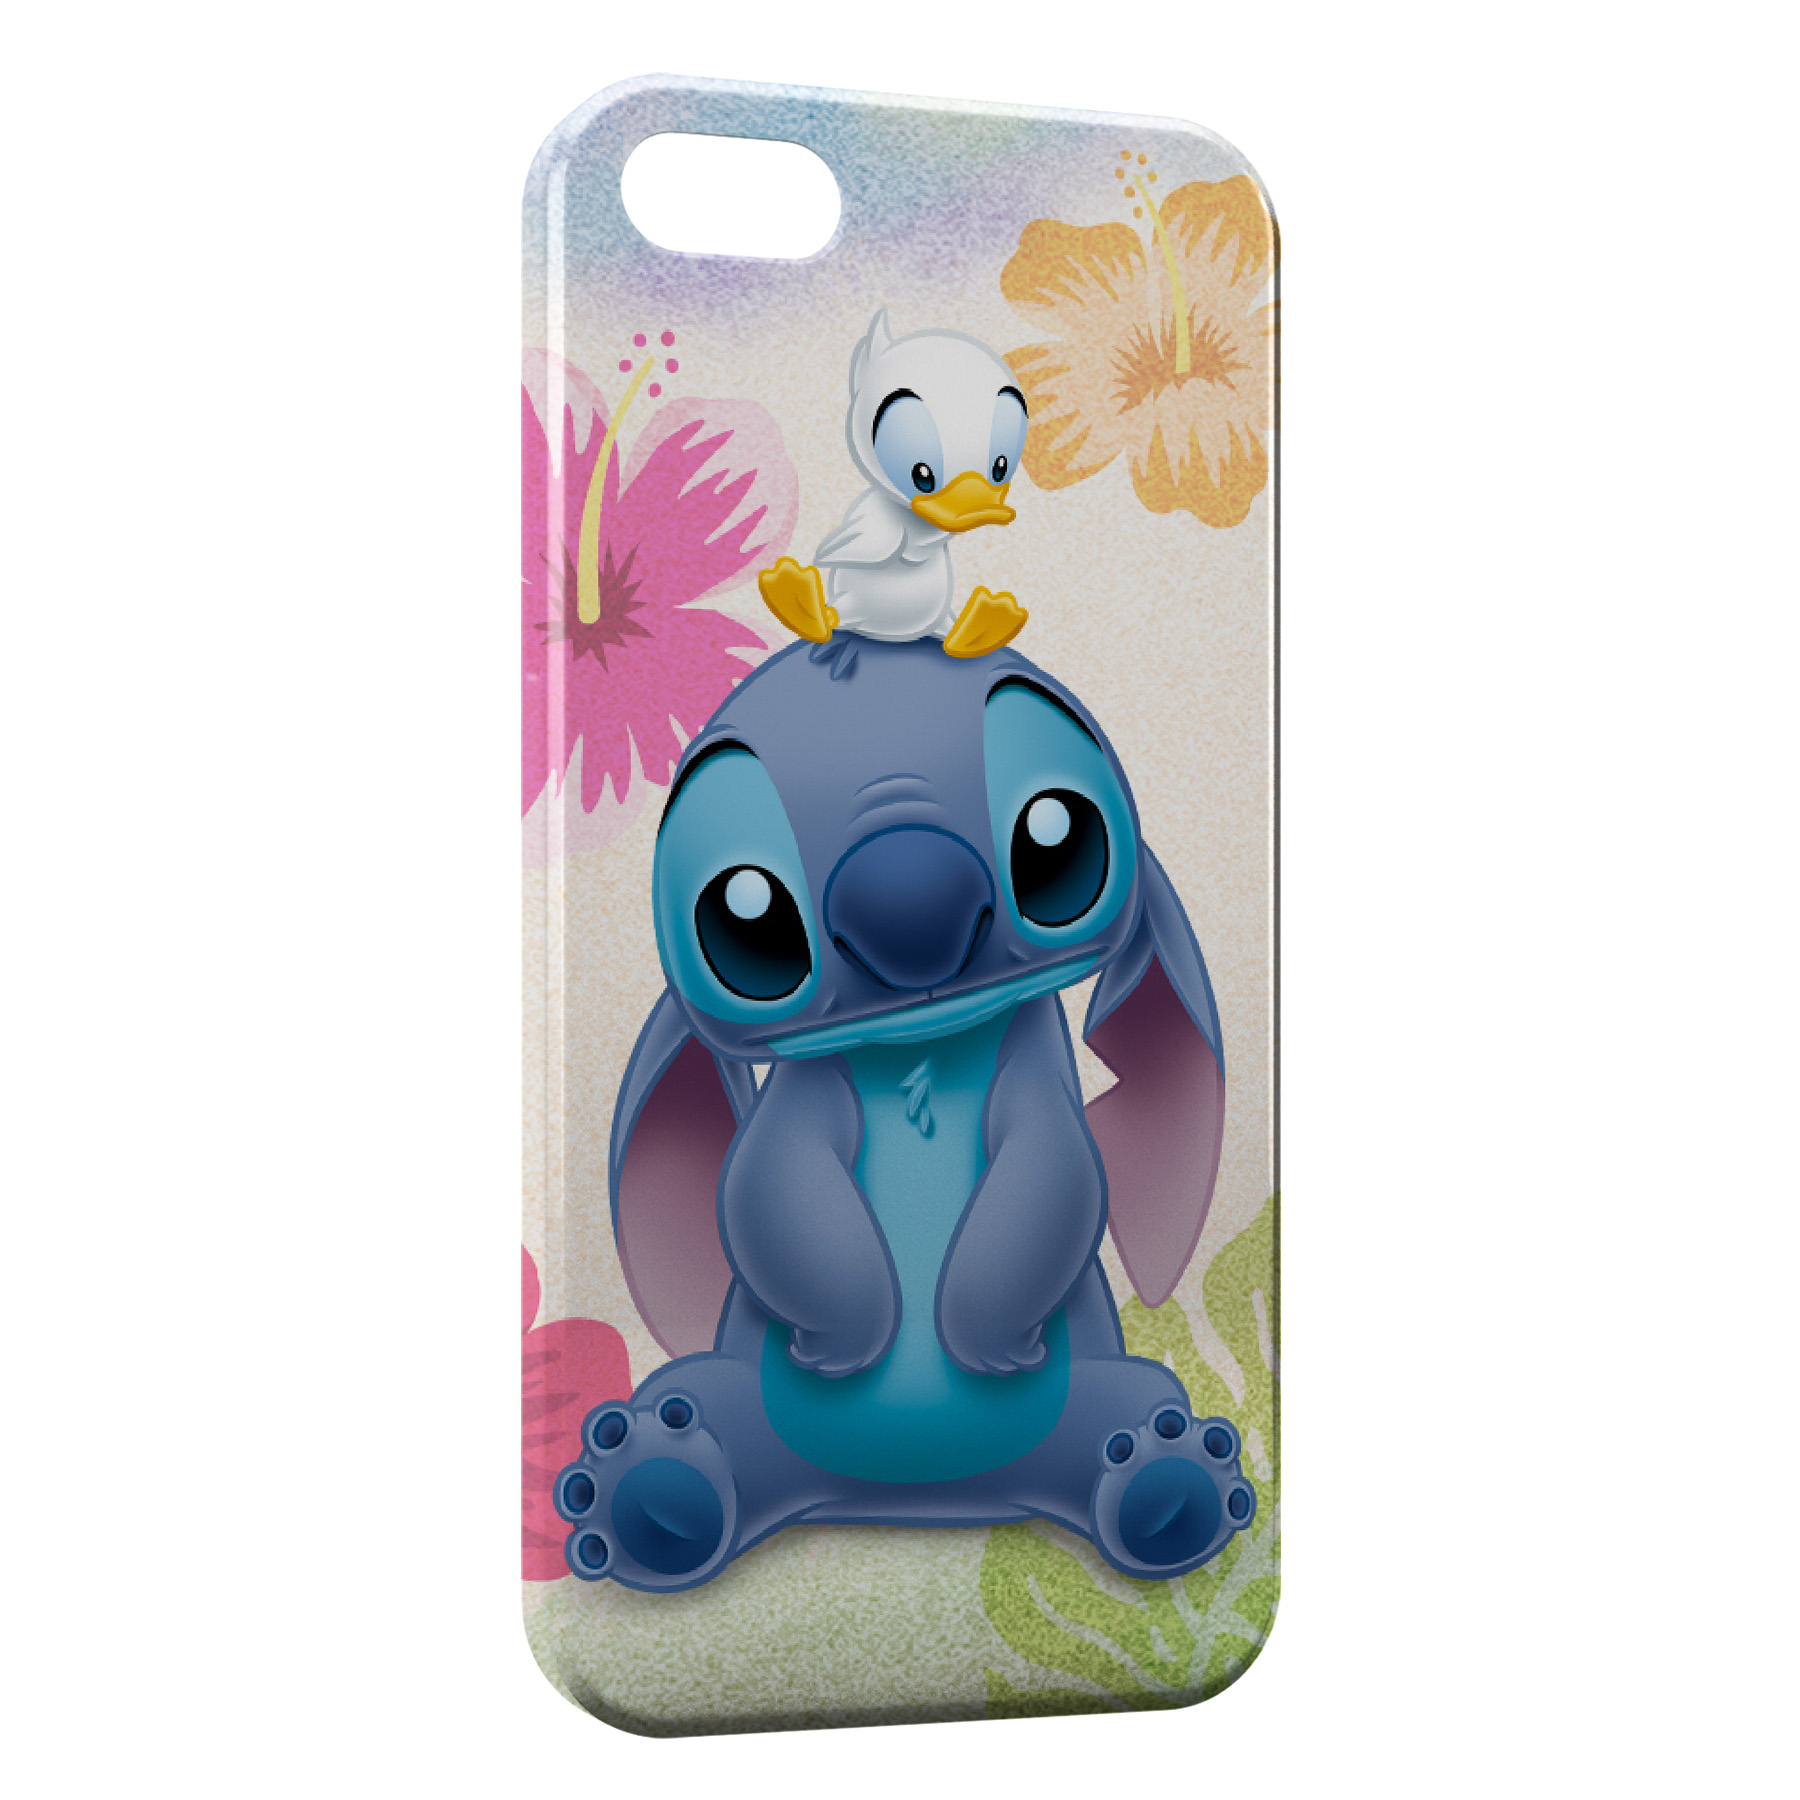 Coque iPhone 6 6S Stitch Canard